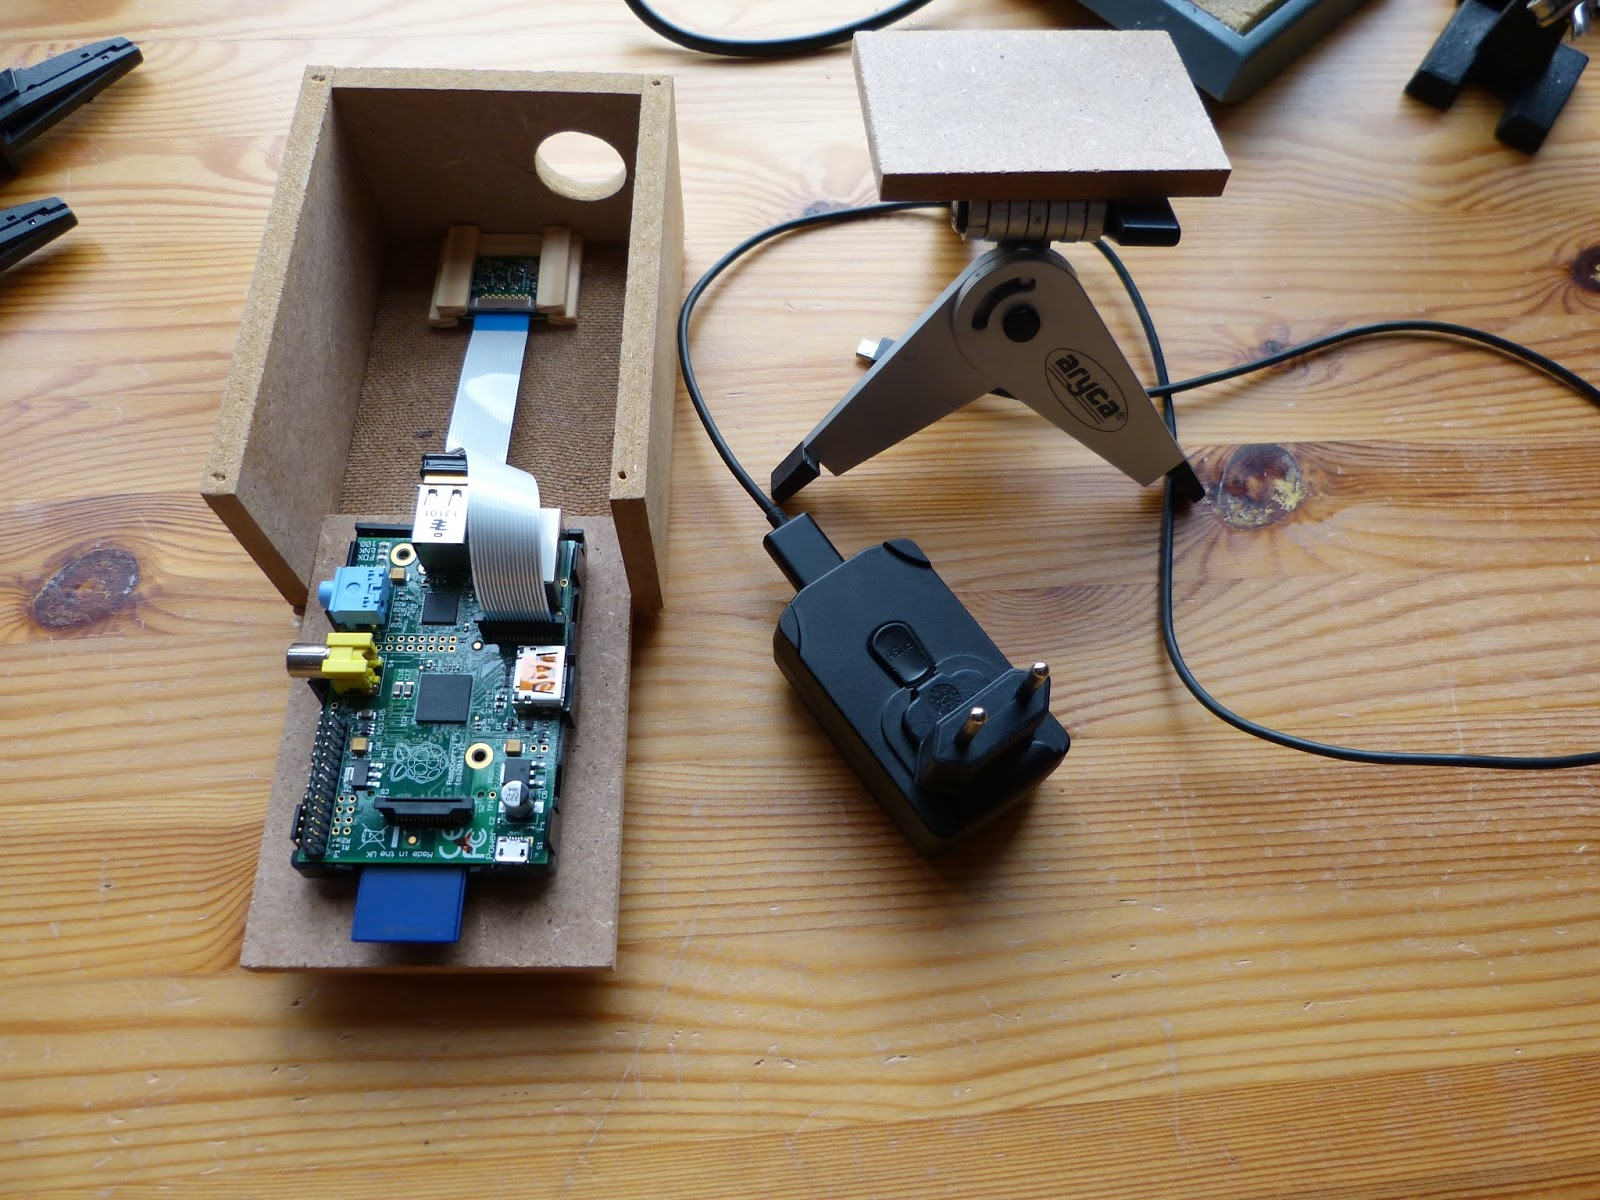 Raspberry Pi B and camera module in an MDF enclosure.